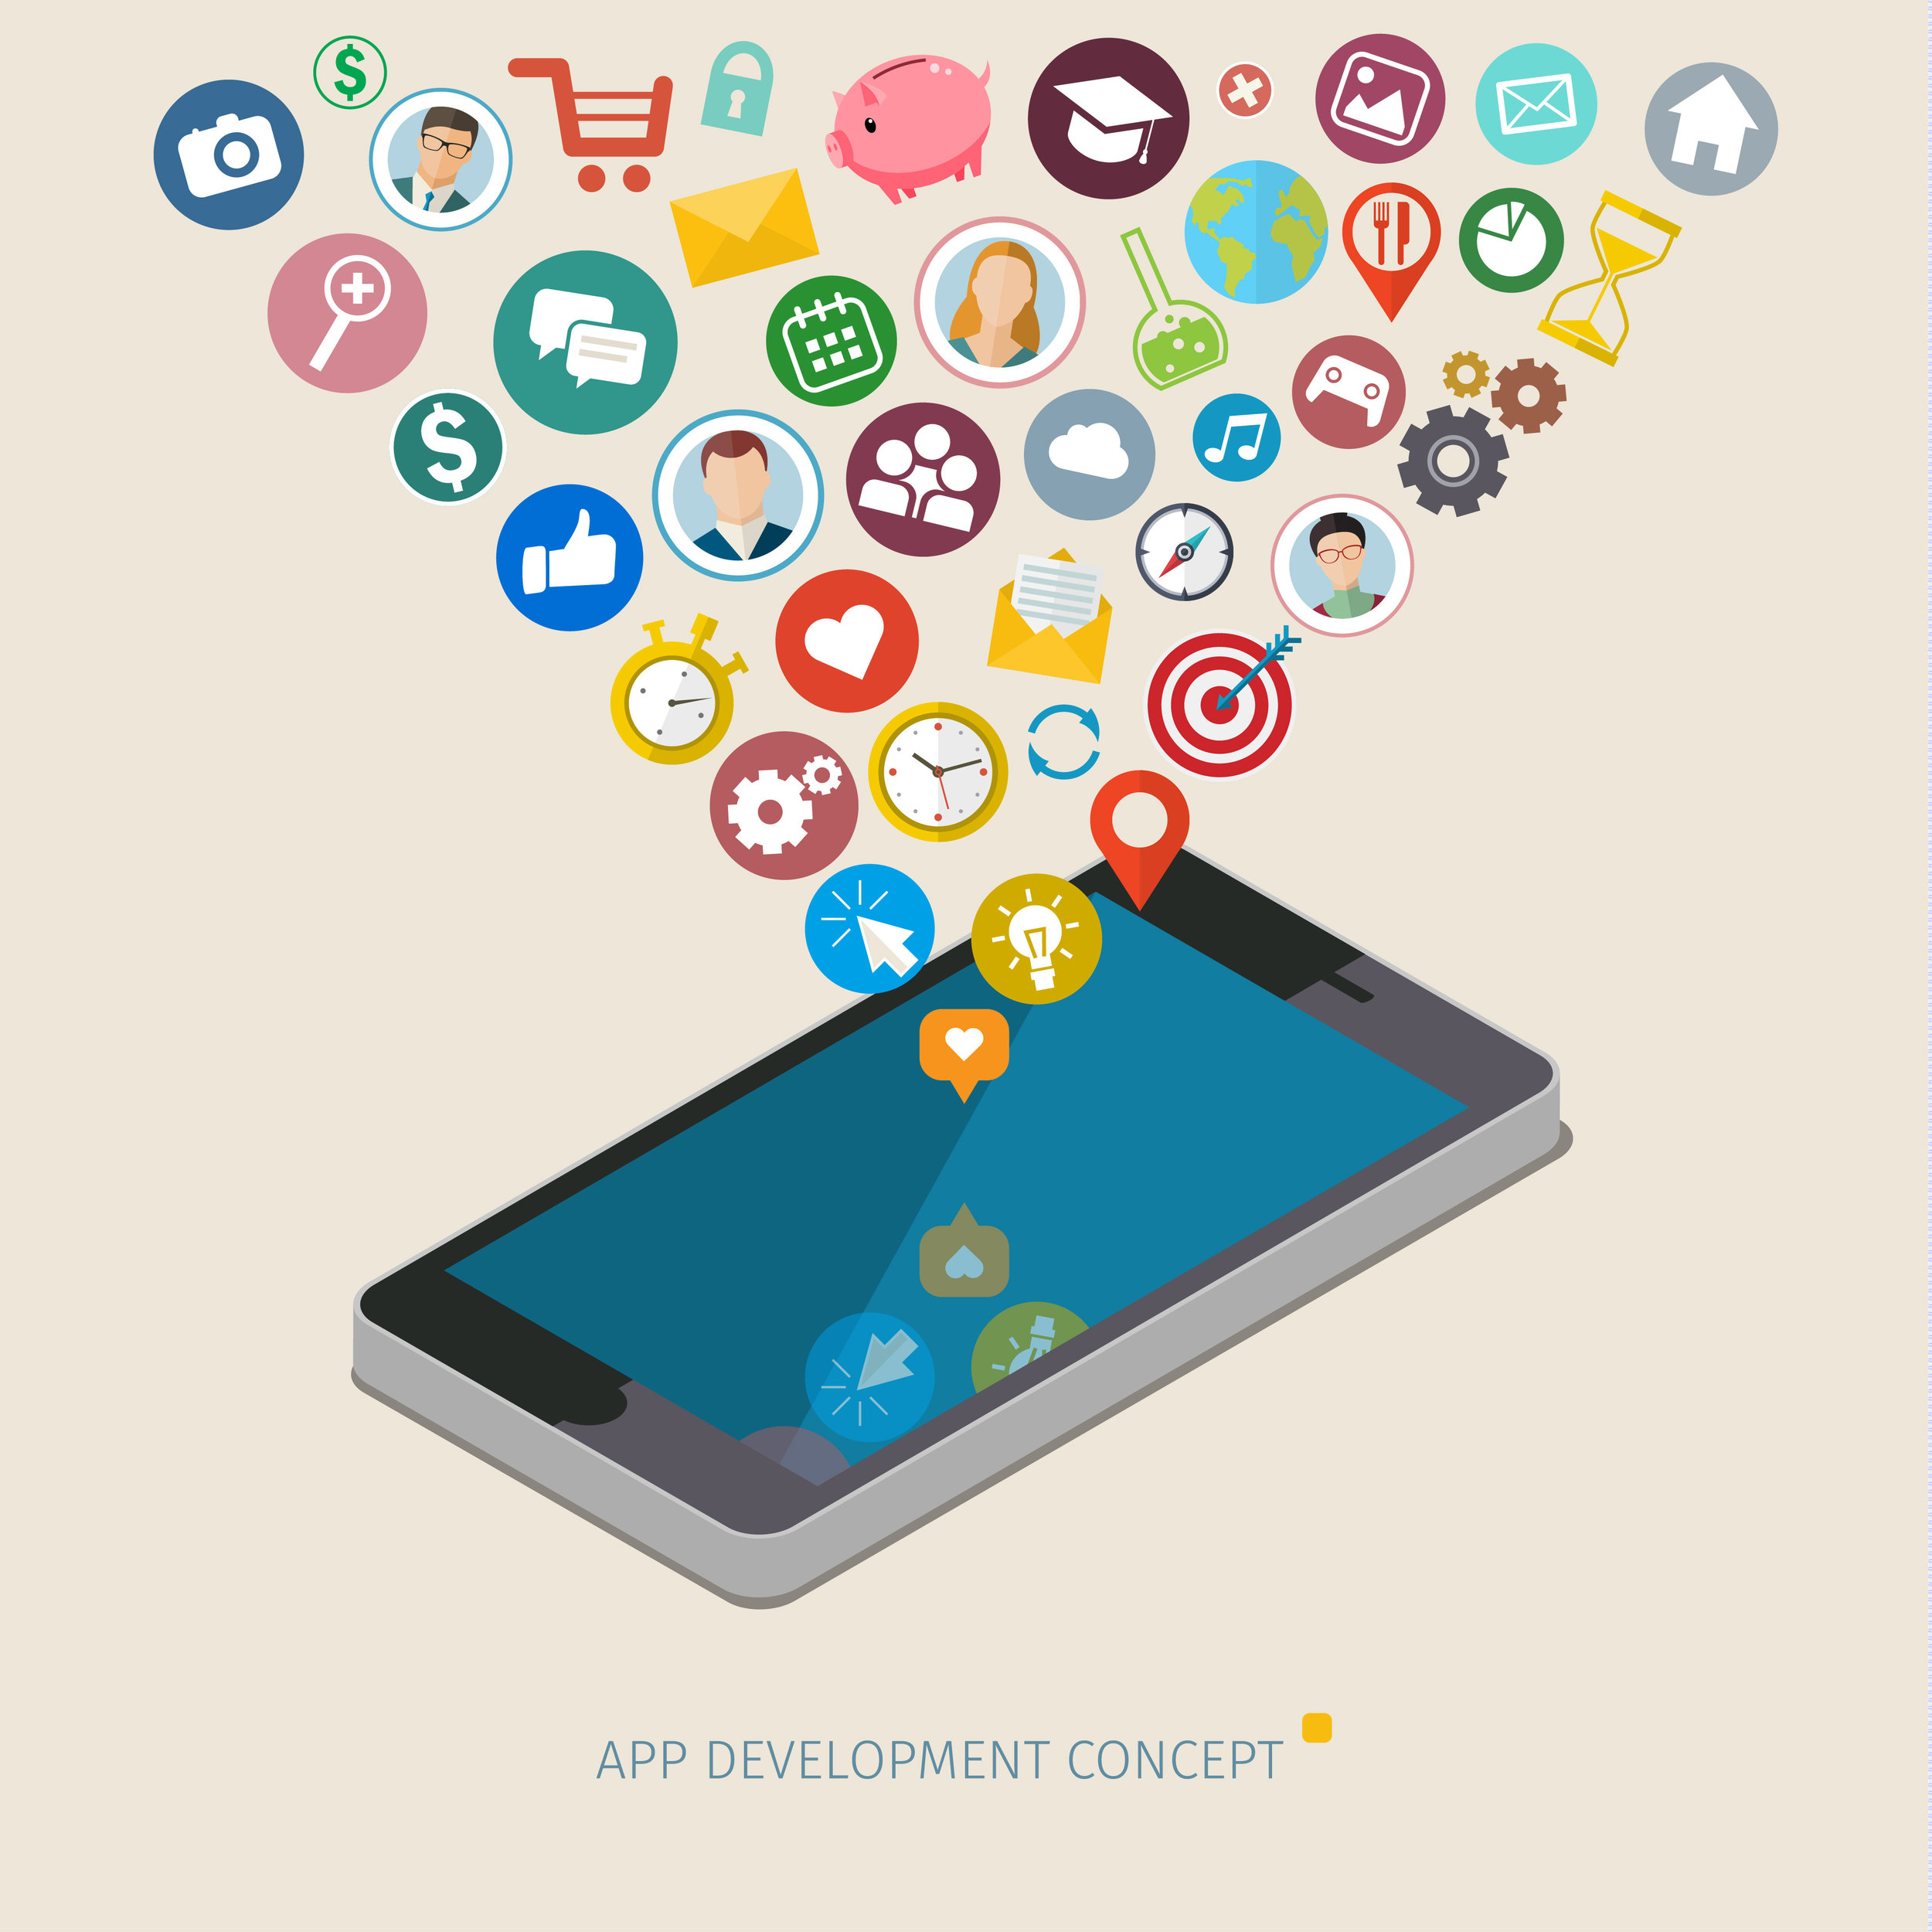 Challenges Of Mobile App Development For Business